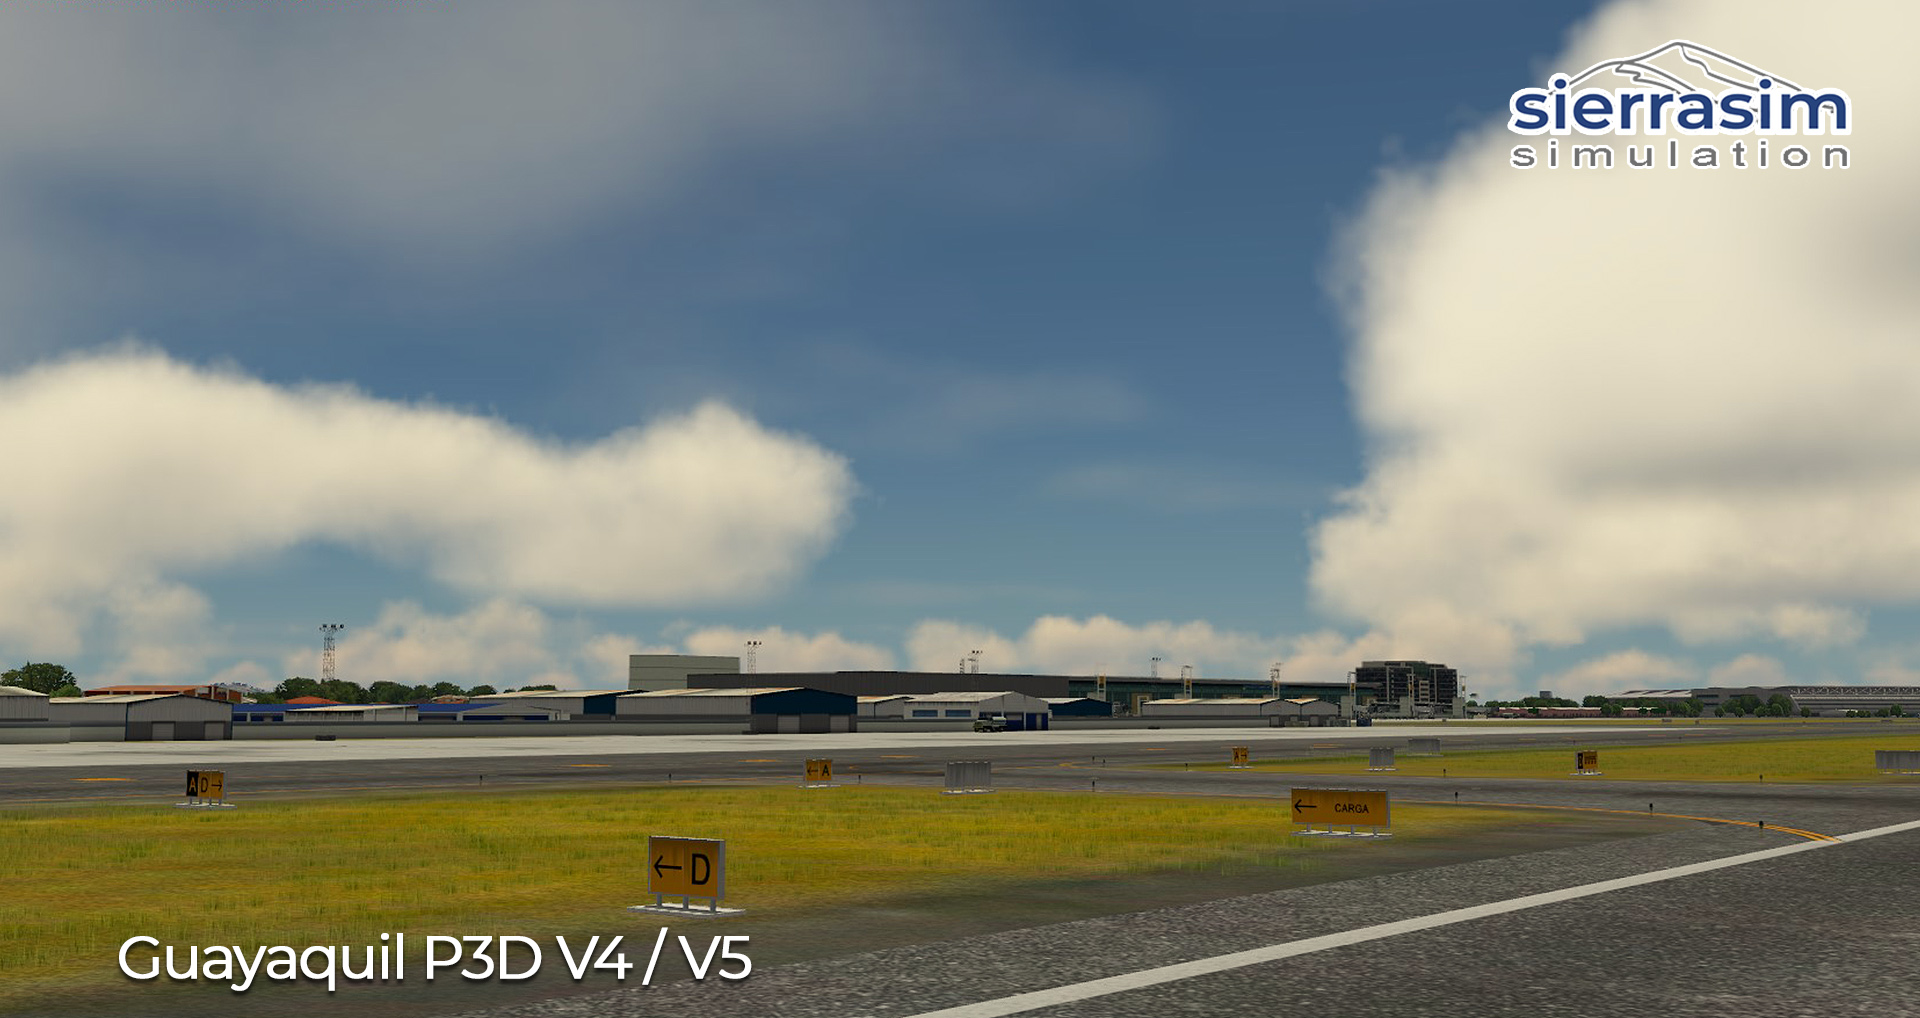 SIERRASIM SIMULATION - SEGU JOSE JOAQUIN DE OLMEDO INTERNATIONAL AIRPORT P3D